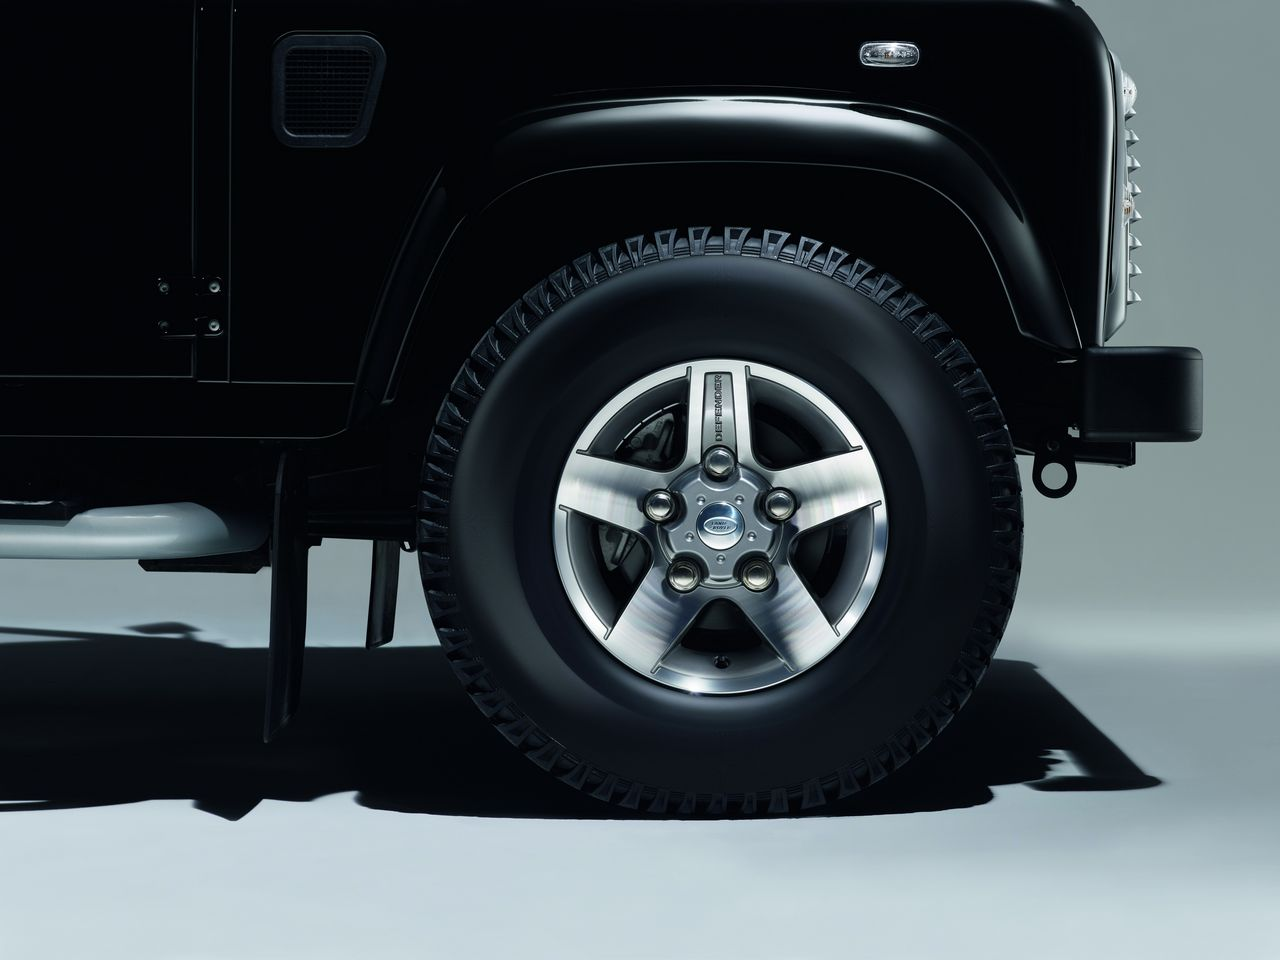 anteprima-salone-di-ginevra-2014-land-rover-defender-black-pack-e-silver-pack-special-edition-0-100_5